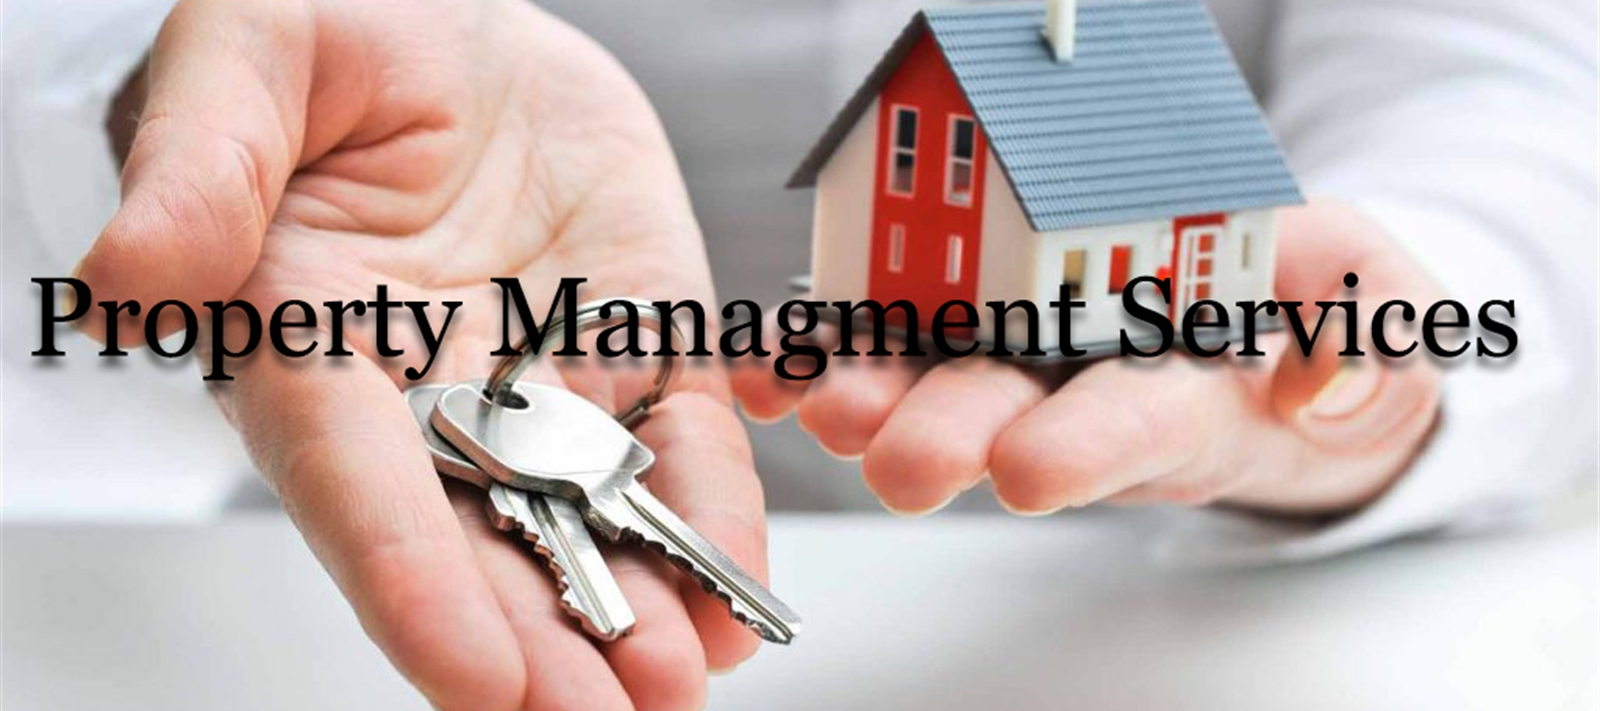 We manage your property